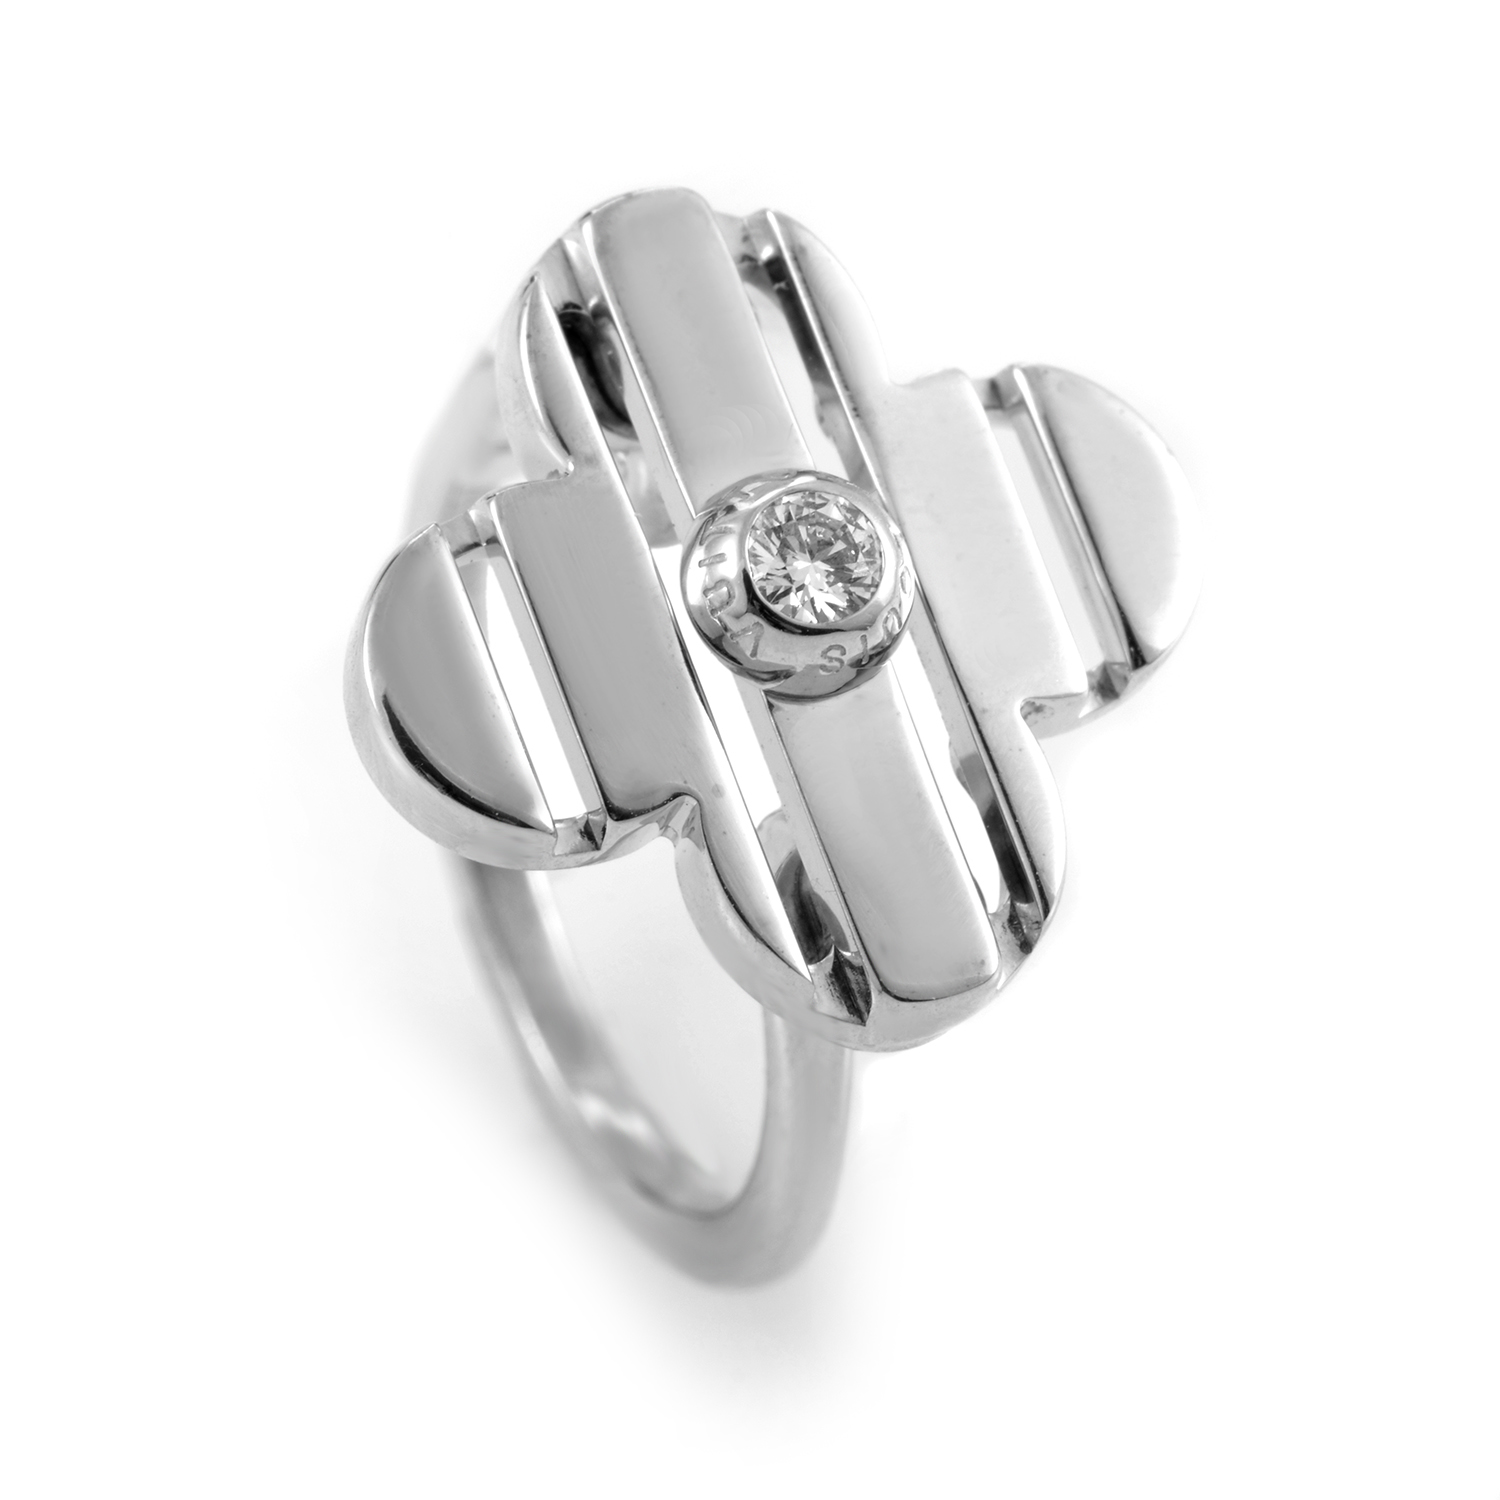 Louis Vuitton 18K White Gold Diamond Petite Fleur Ring